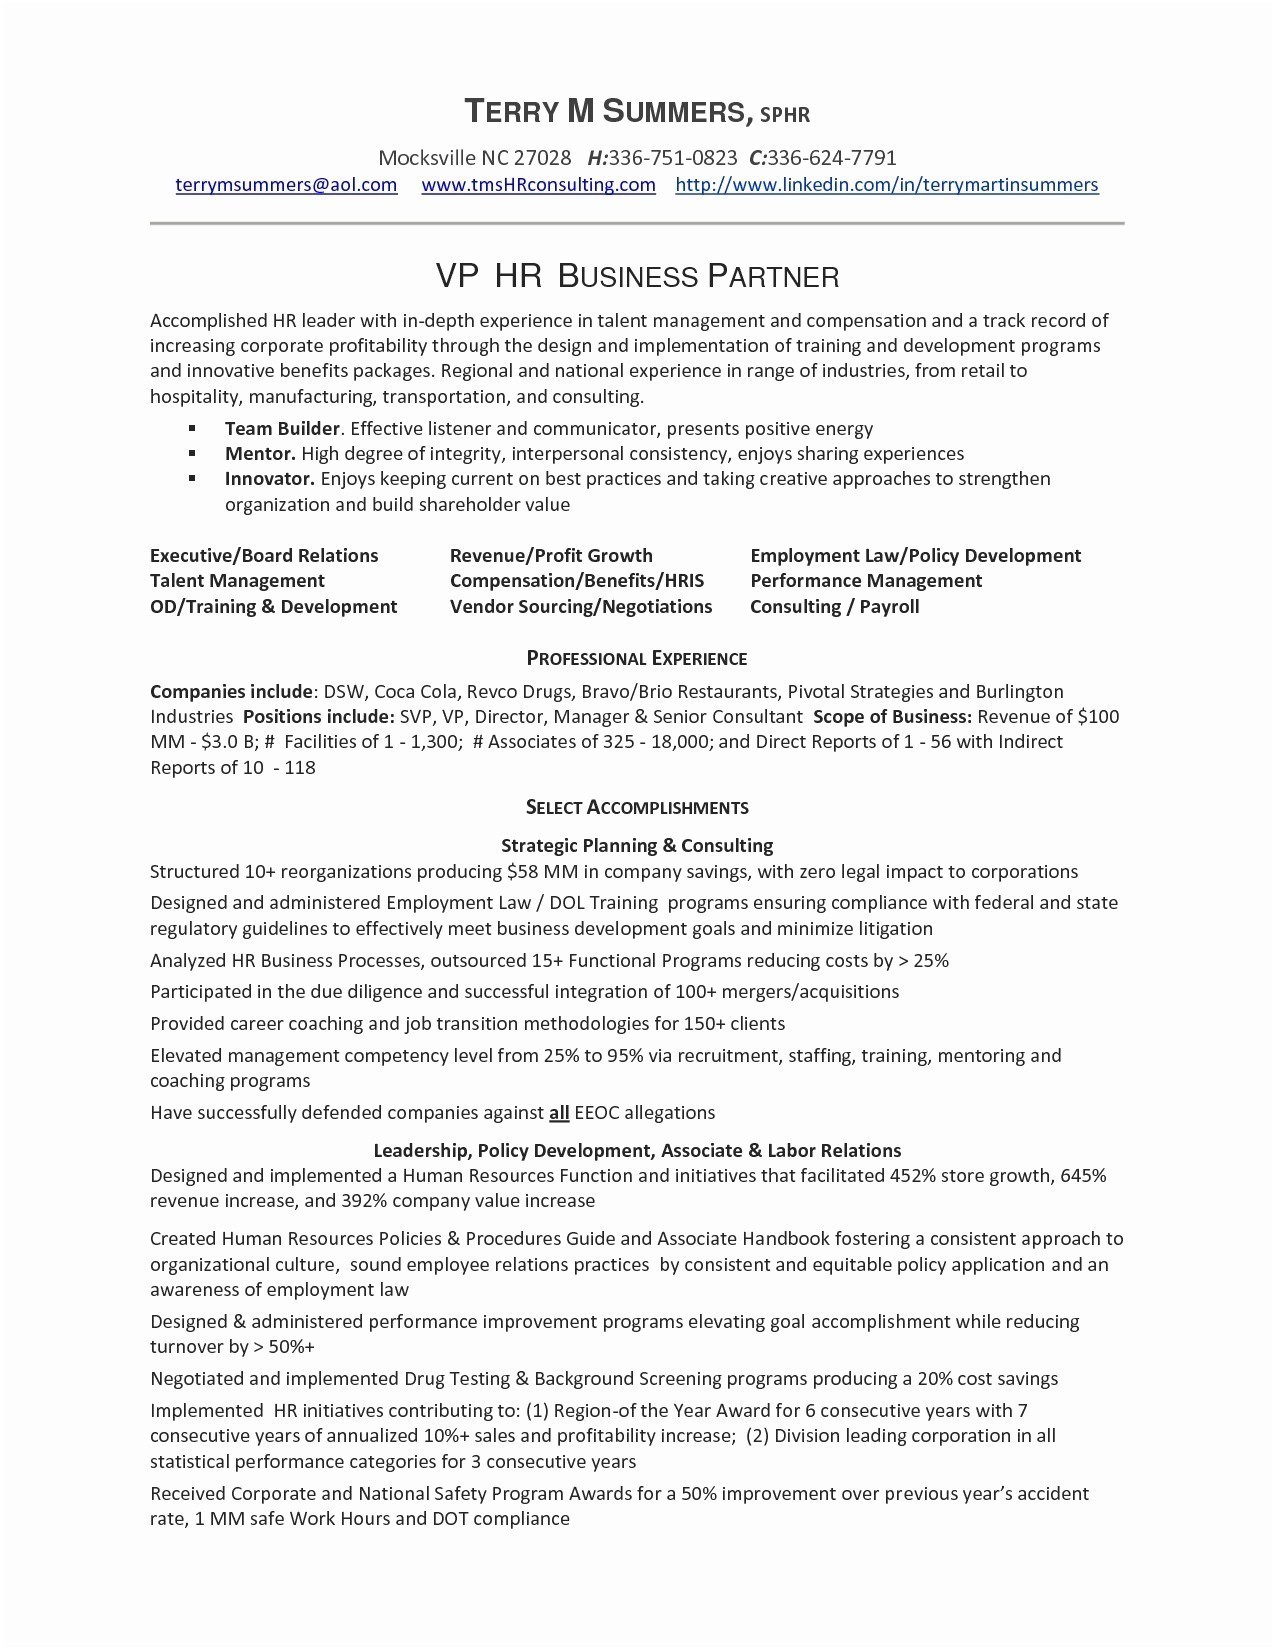 Sales Proposal Letter Template - How to Write A Business Proposal Letter Template Inspirationa Sales